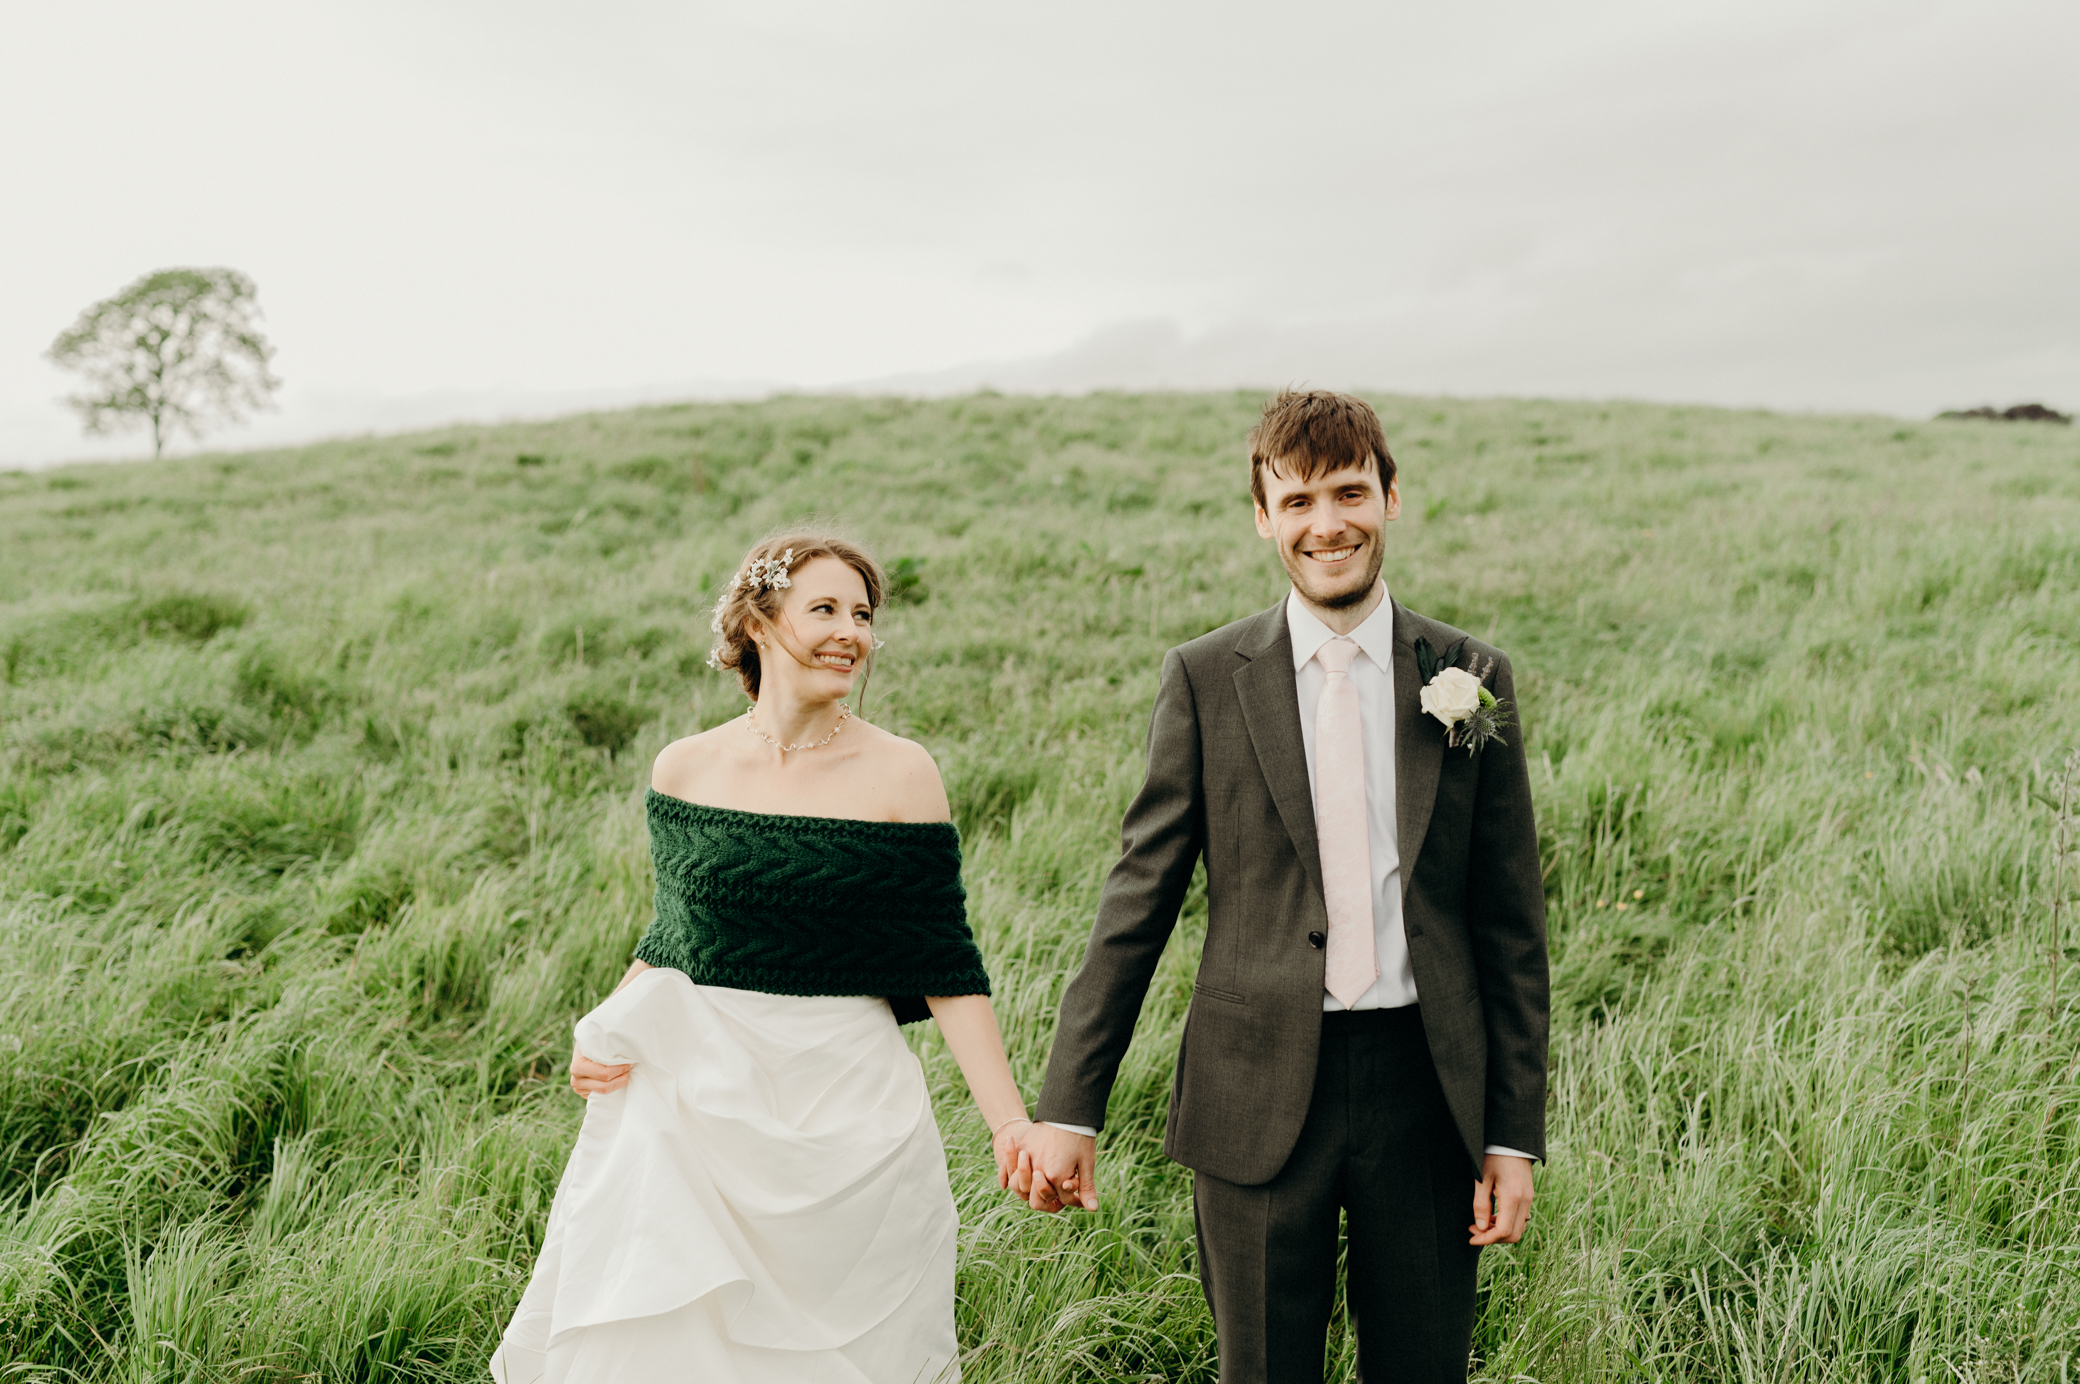 Alternative Wedding Ireland - Elopement photographer Ireland - Destination Photographer Europe-90.jpg